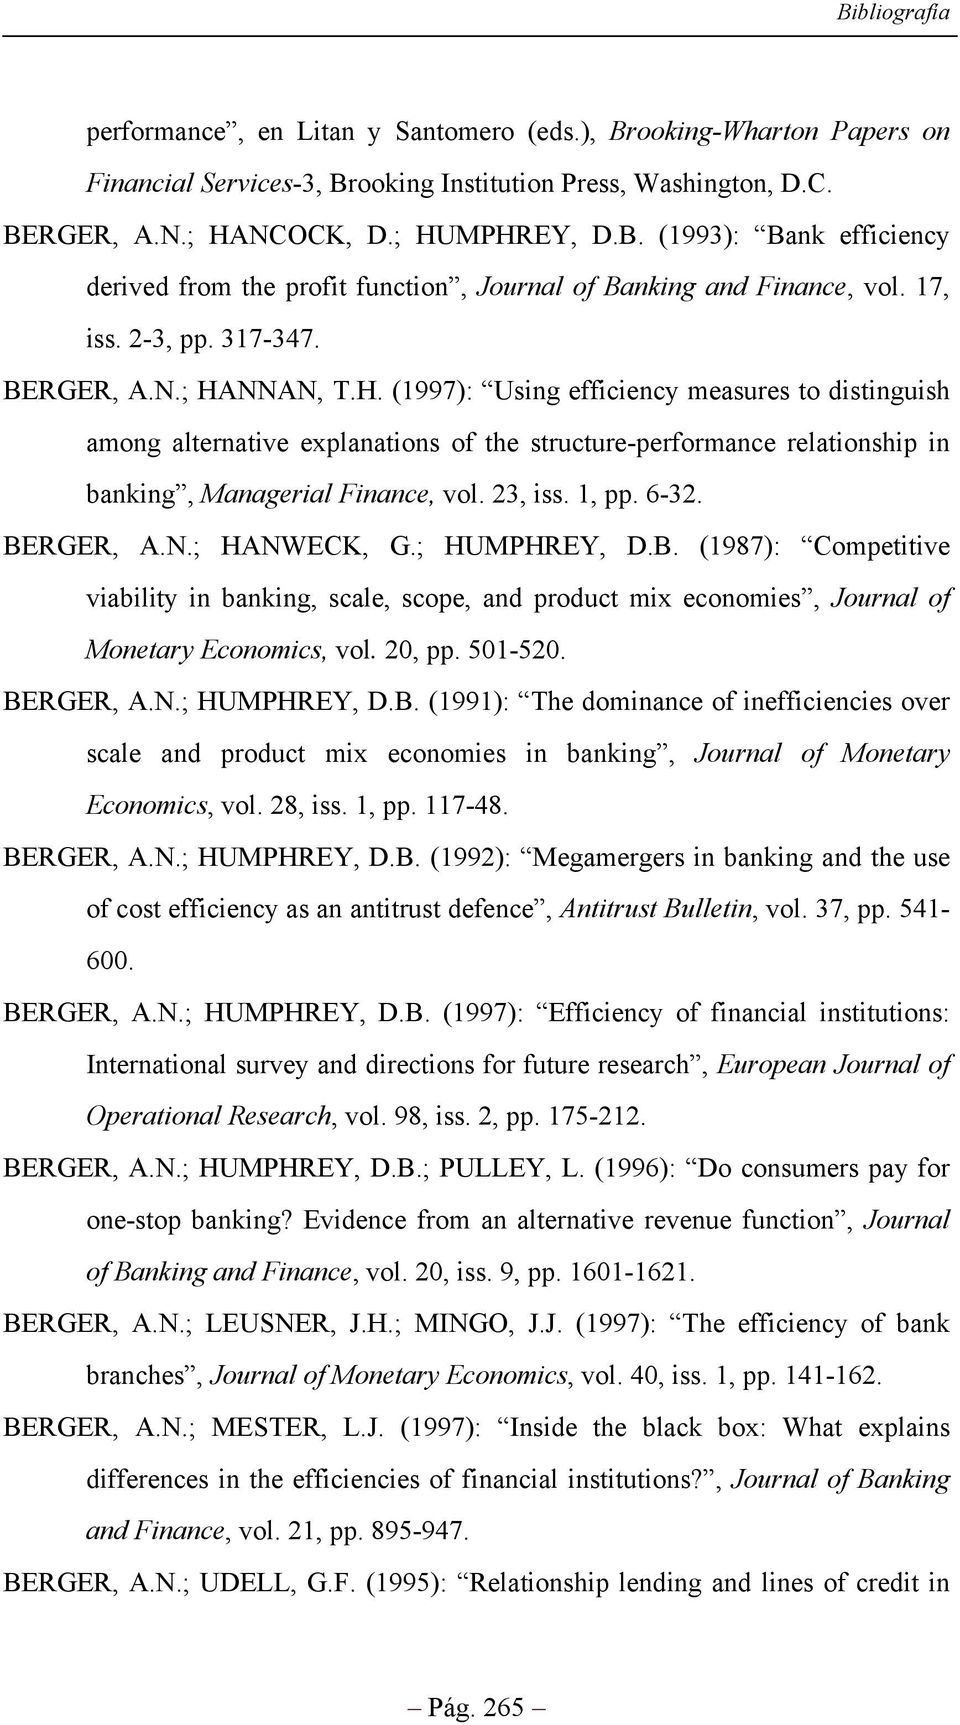 NNAN, T.H. (1997): Using efficiency measures to distinguish among alternative explanations of the structure-performance relationship in banking, Managerial Finance, vol. 23, iss. 1, pp. 6-32.